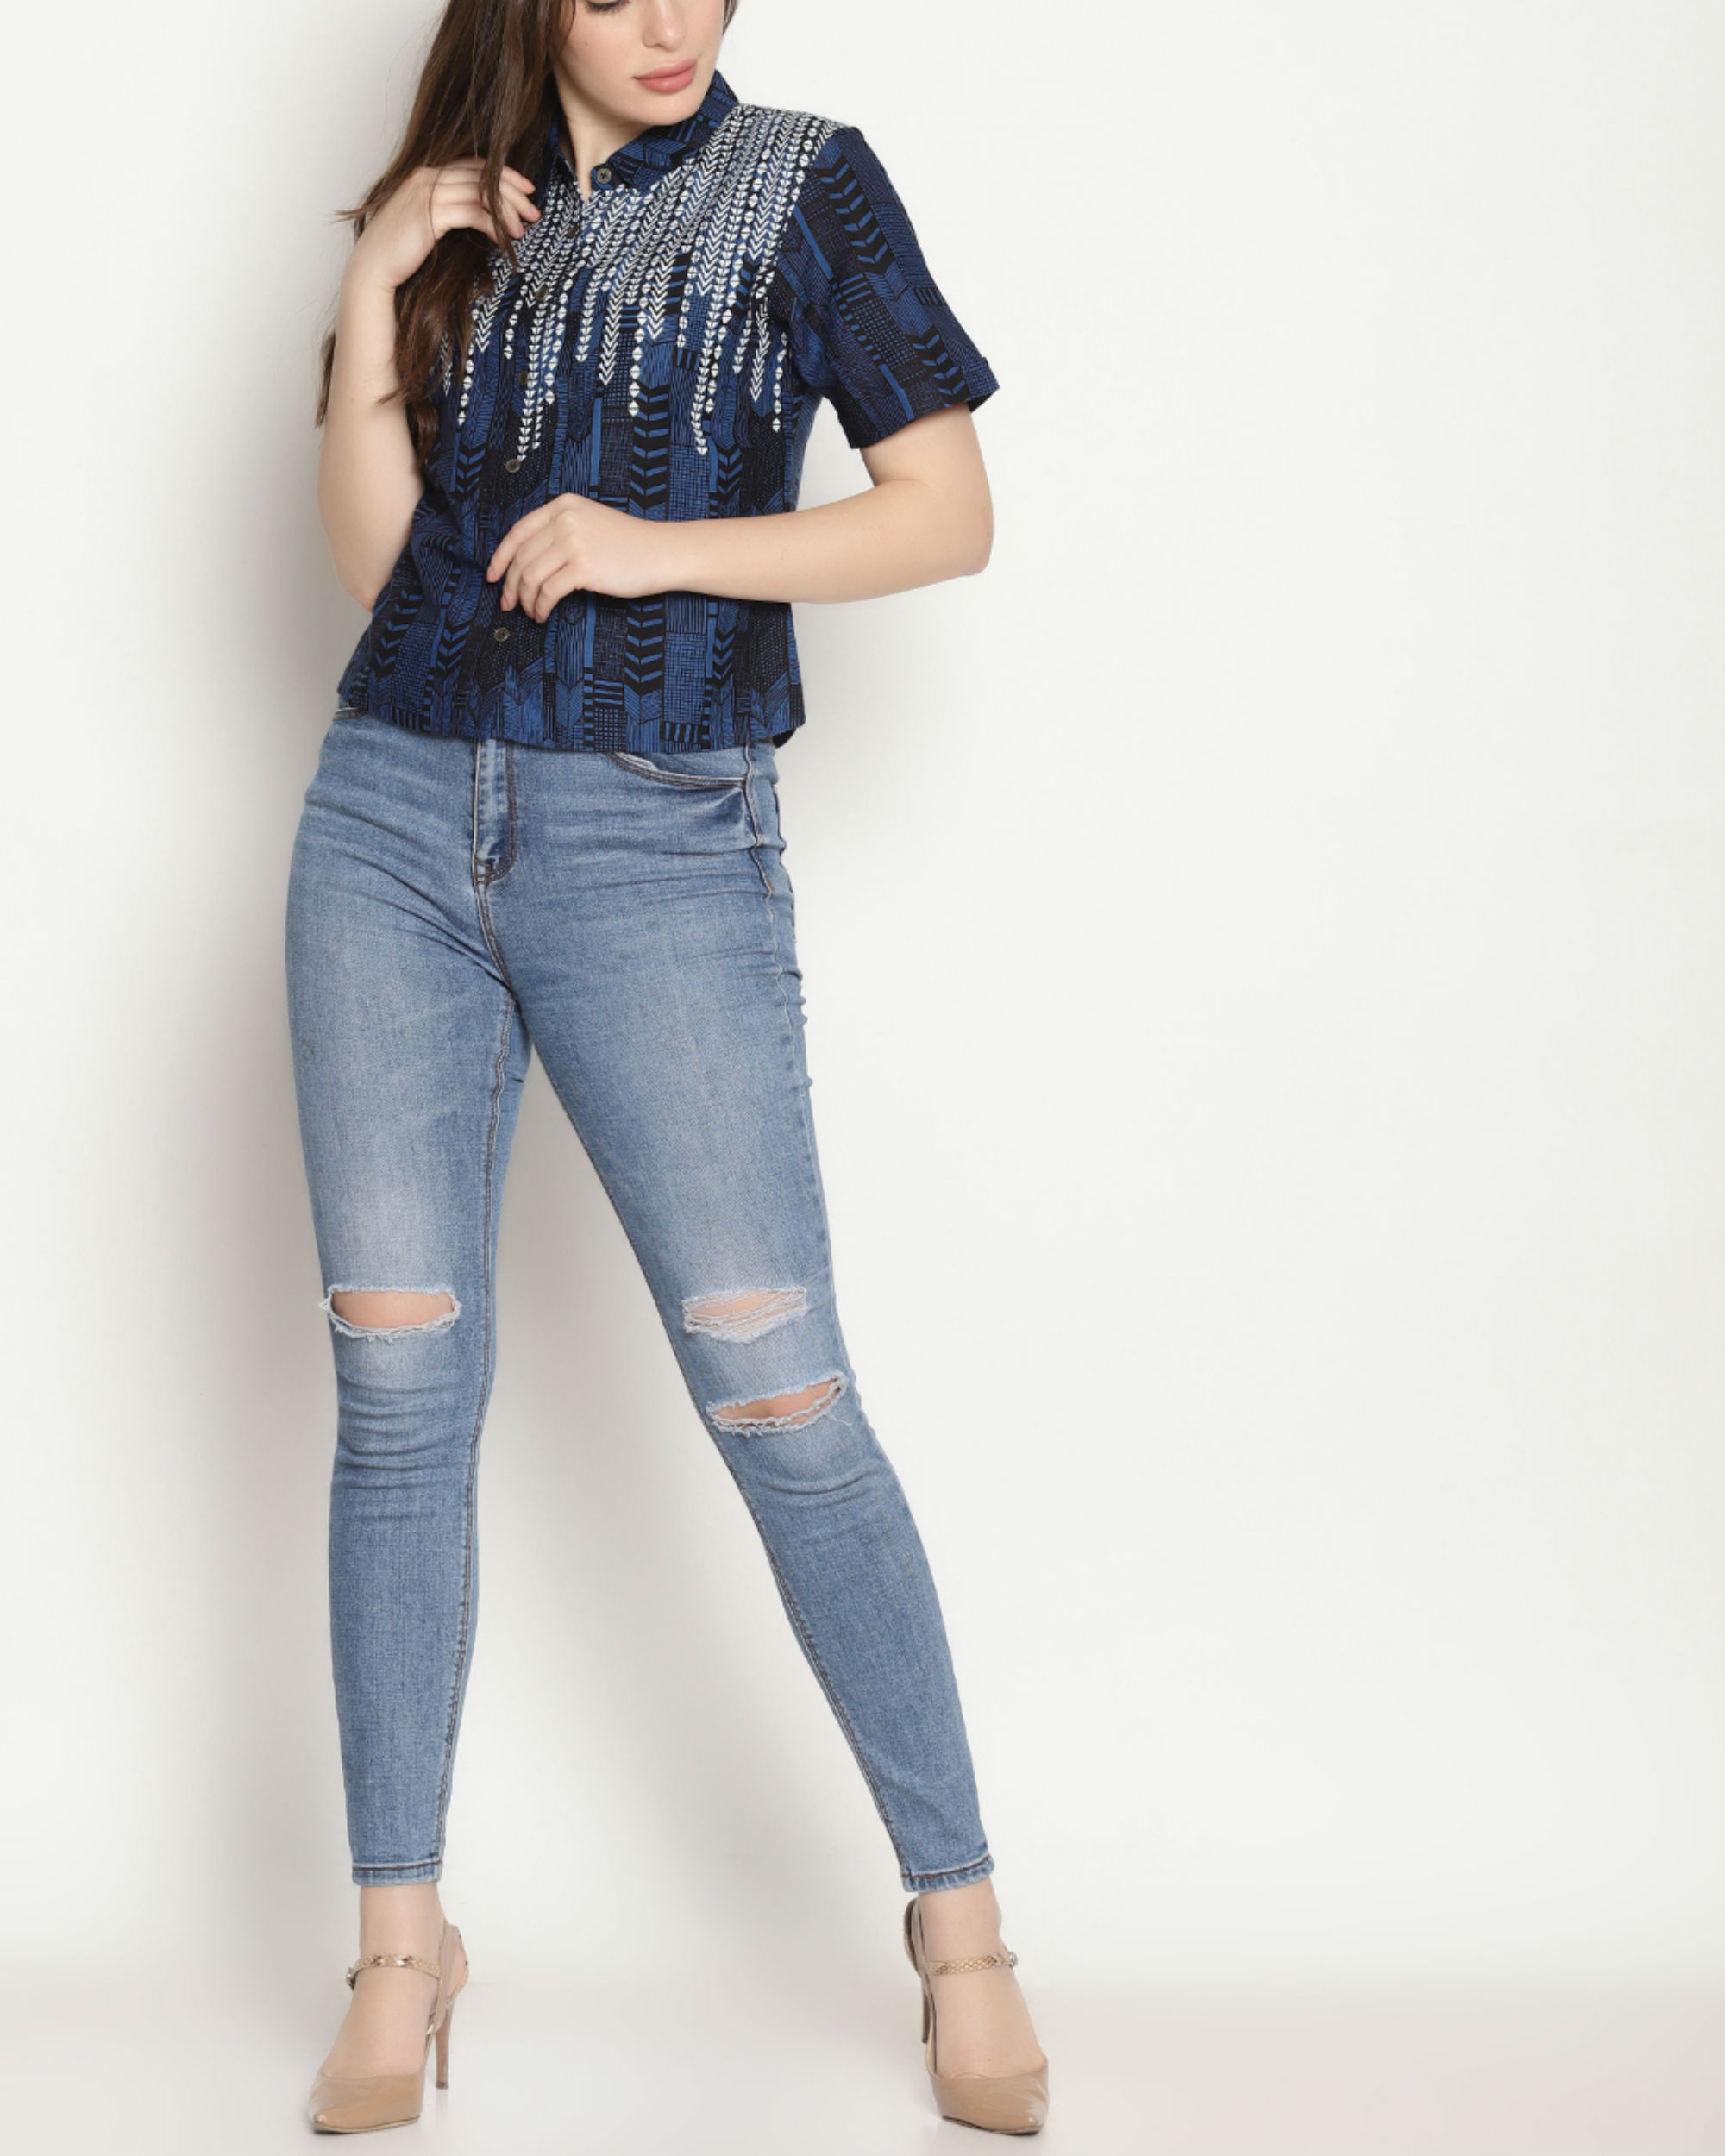 Blue block print top